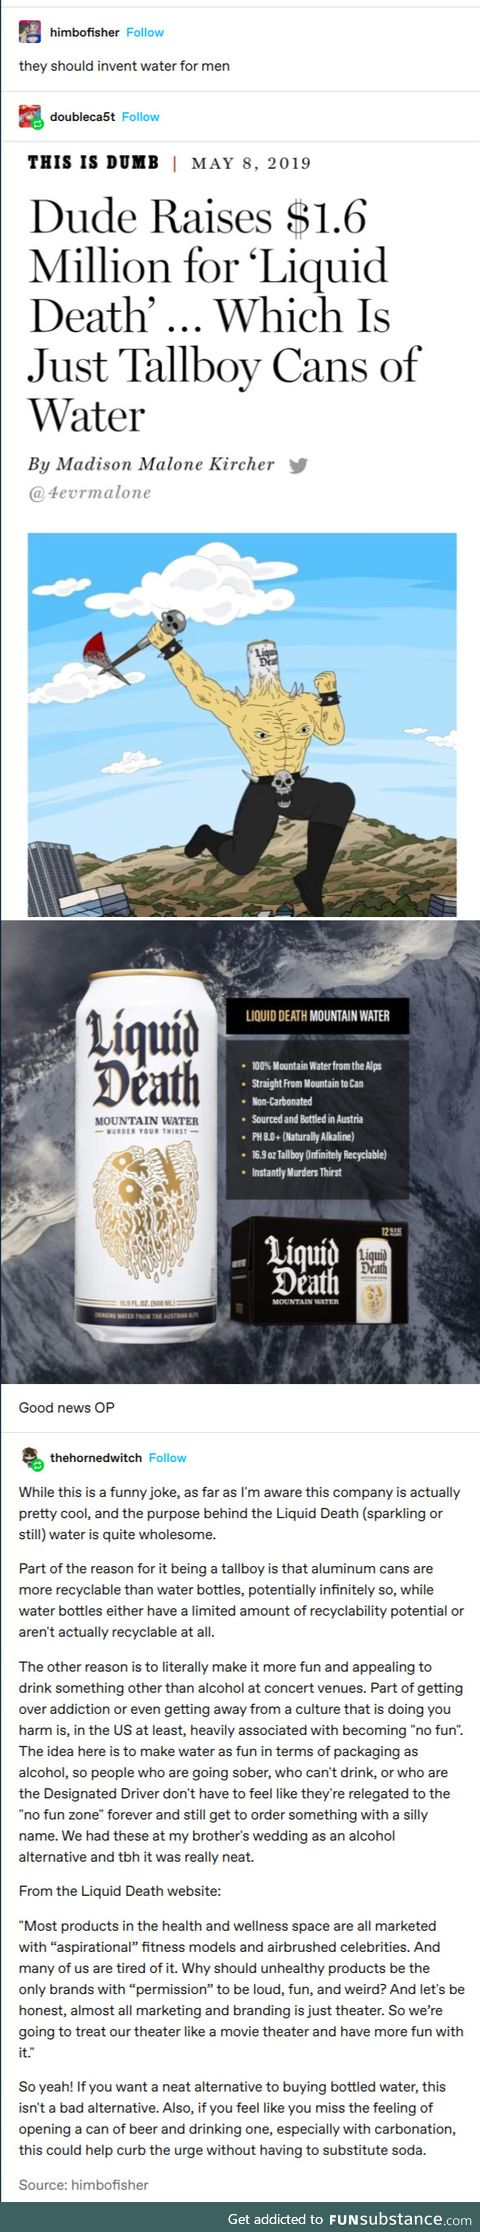 We drink what we like, and we like death!